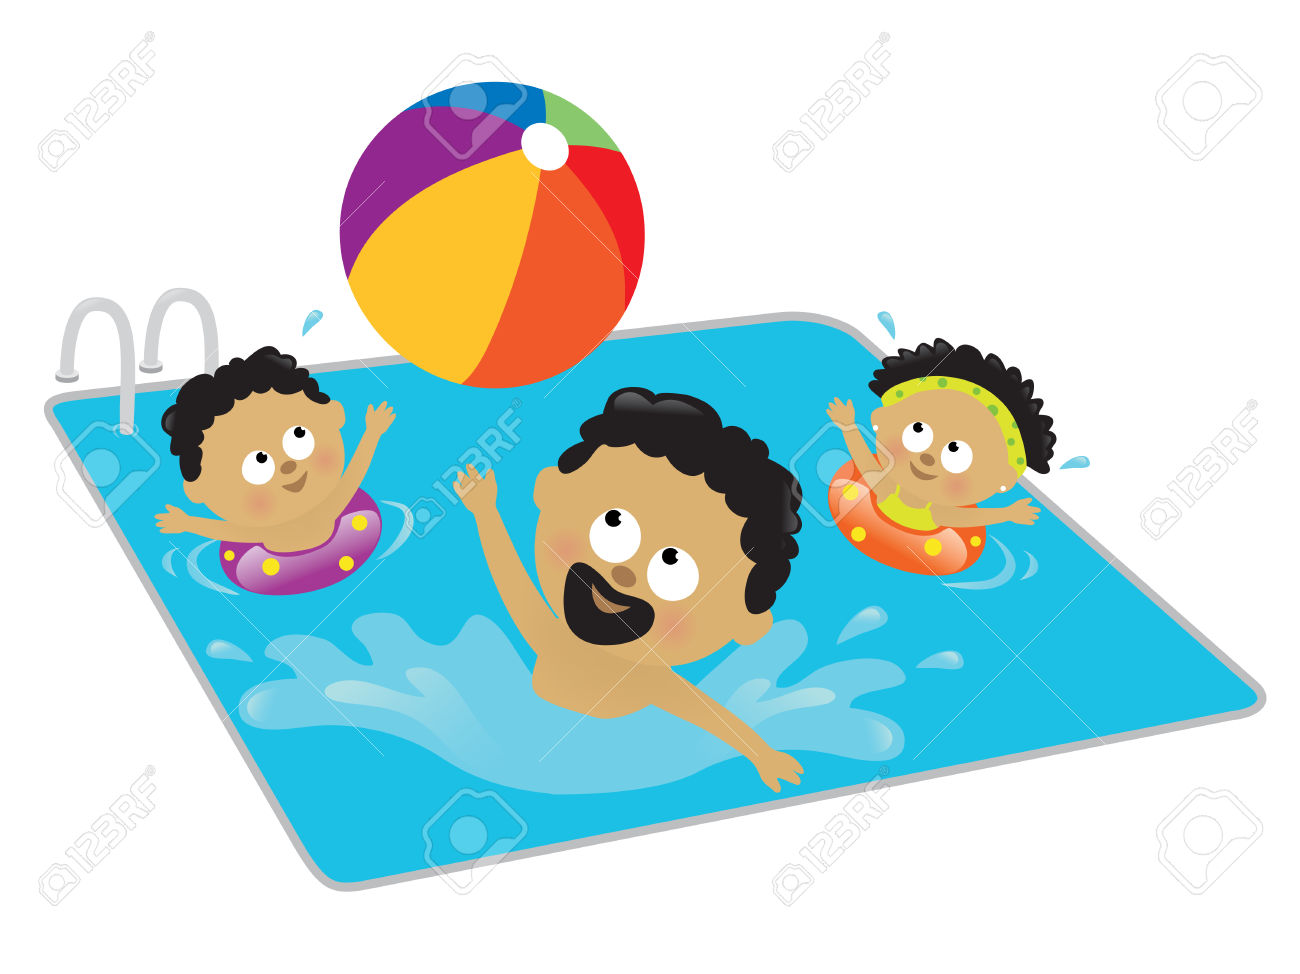 clipart royalty free download Children swimming pictures free. Kids swim clipart